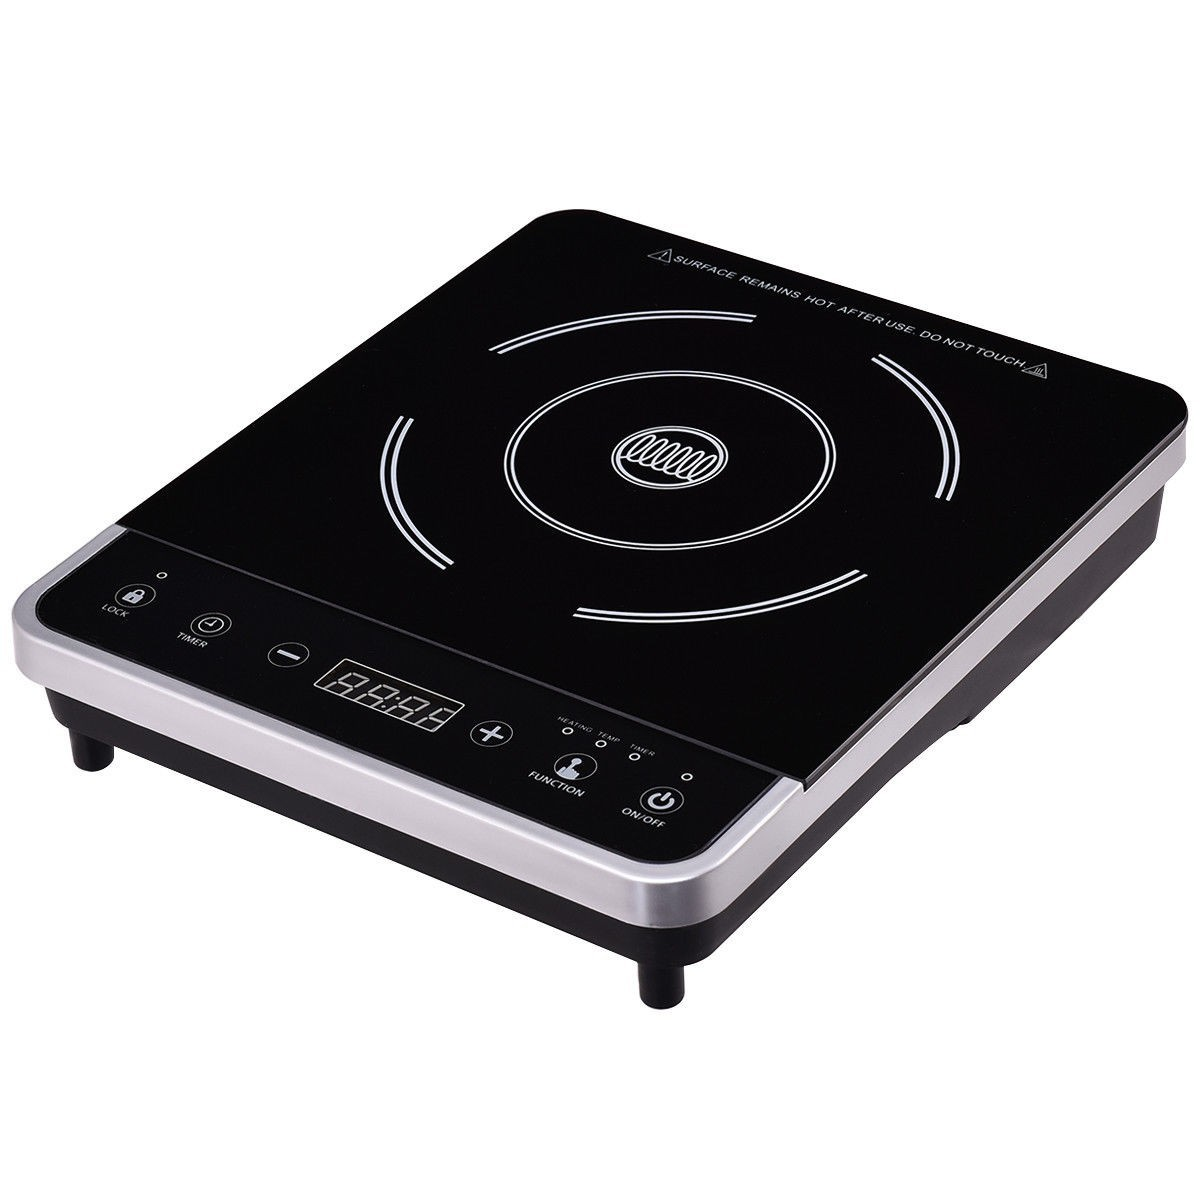 Induction Hot Plate Electric Induction Cooker Single Burner Digital Hot Plate